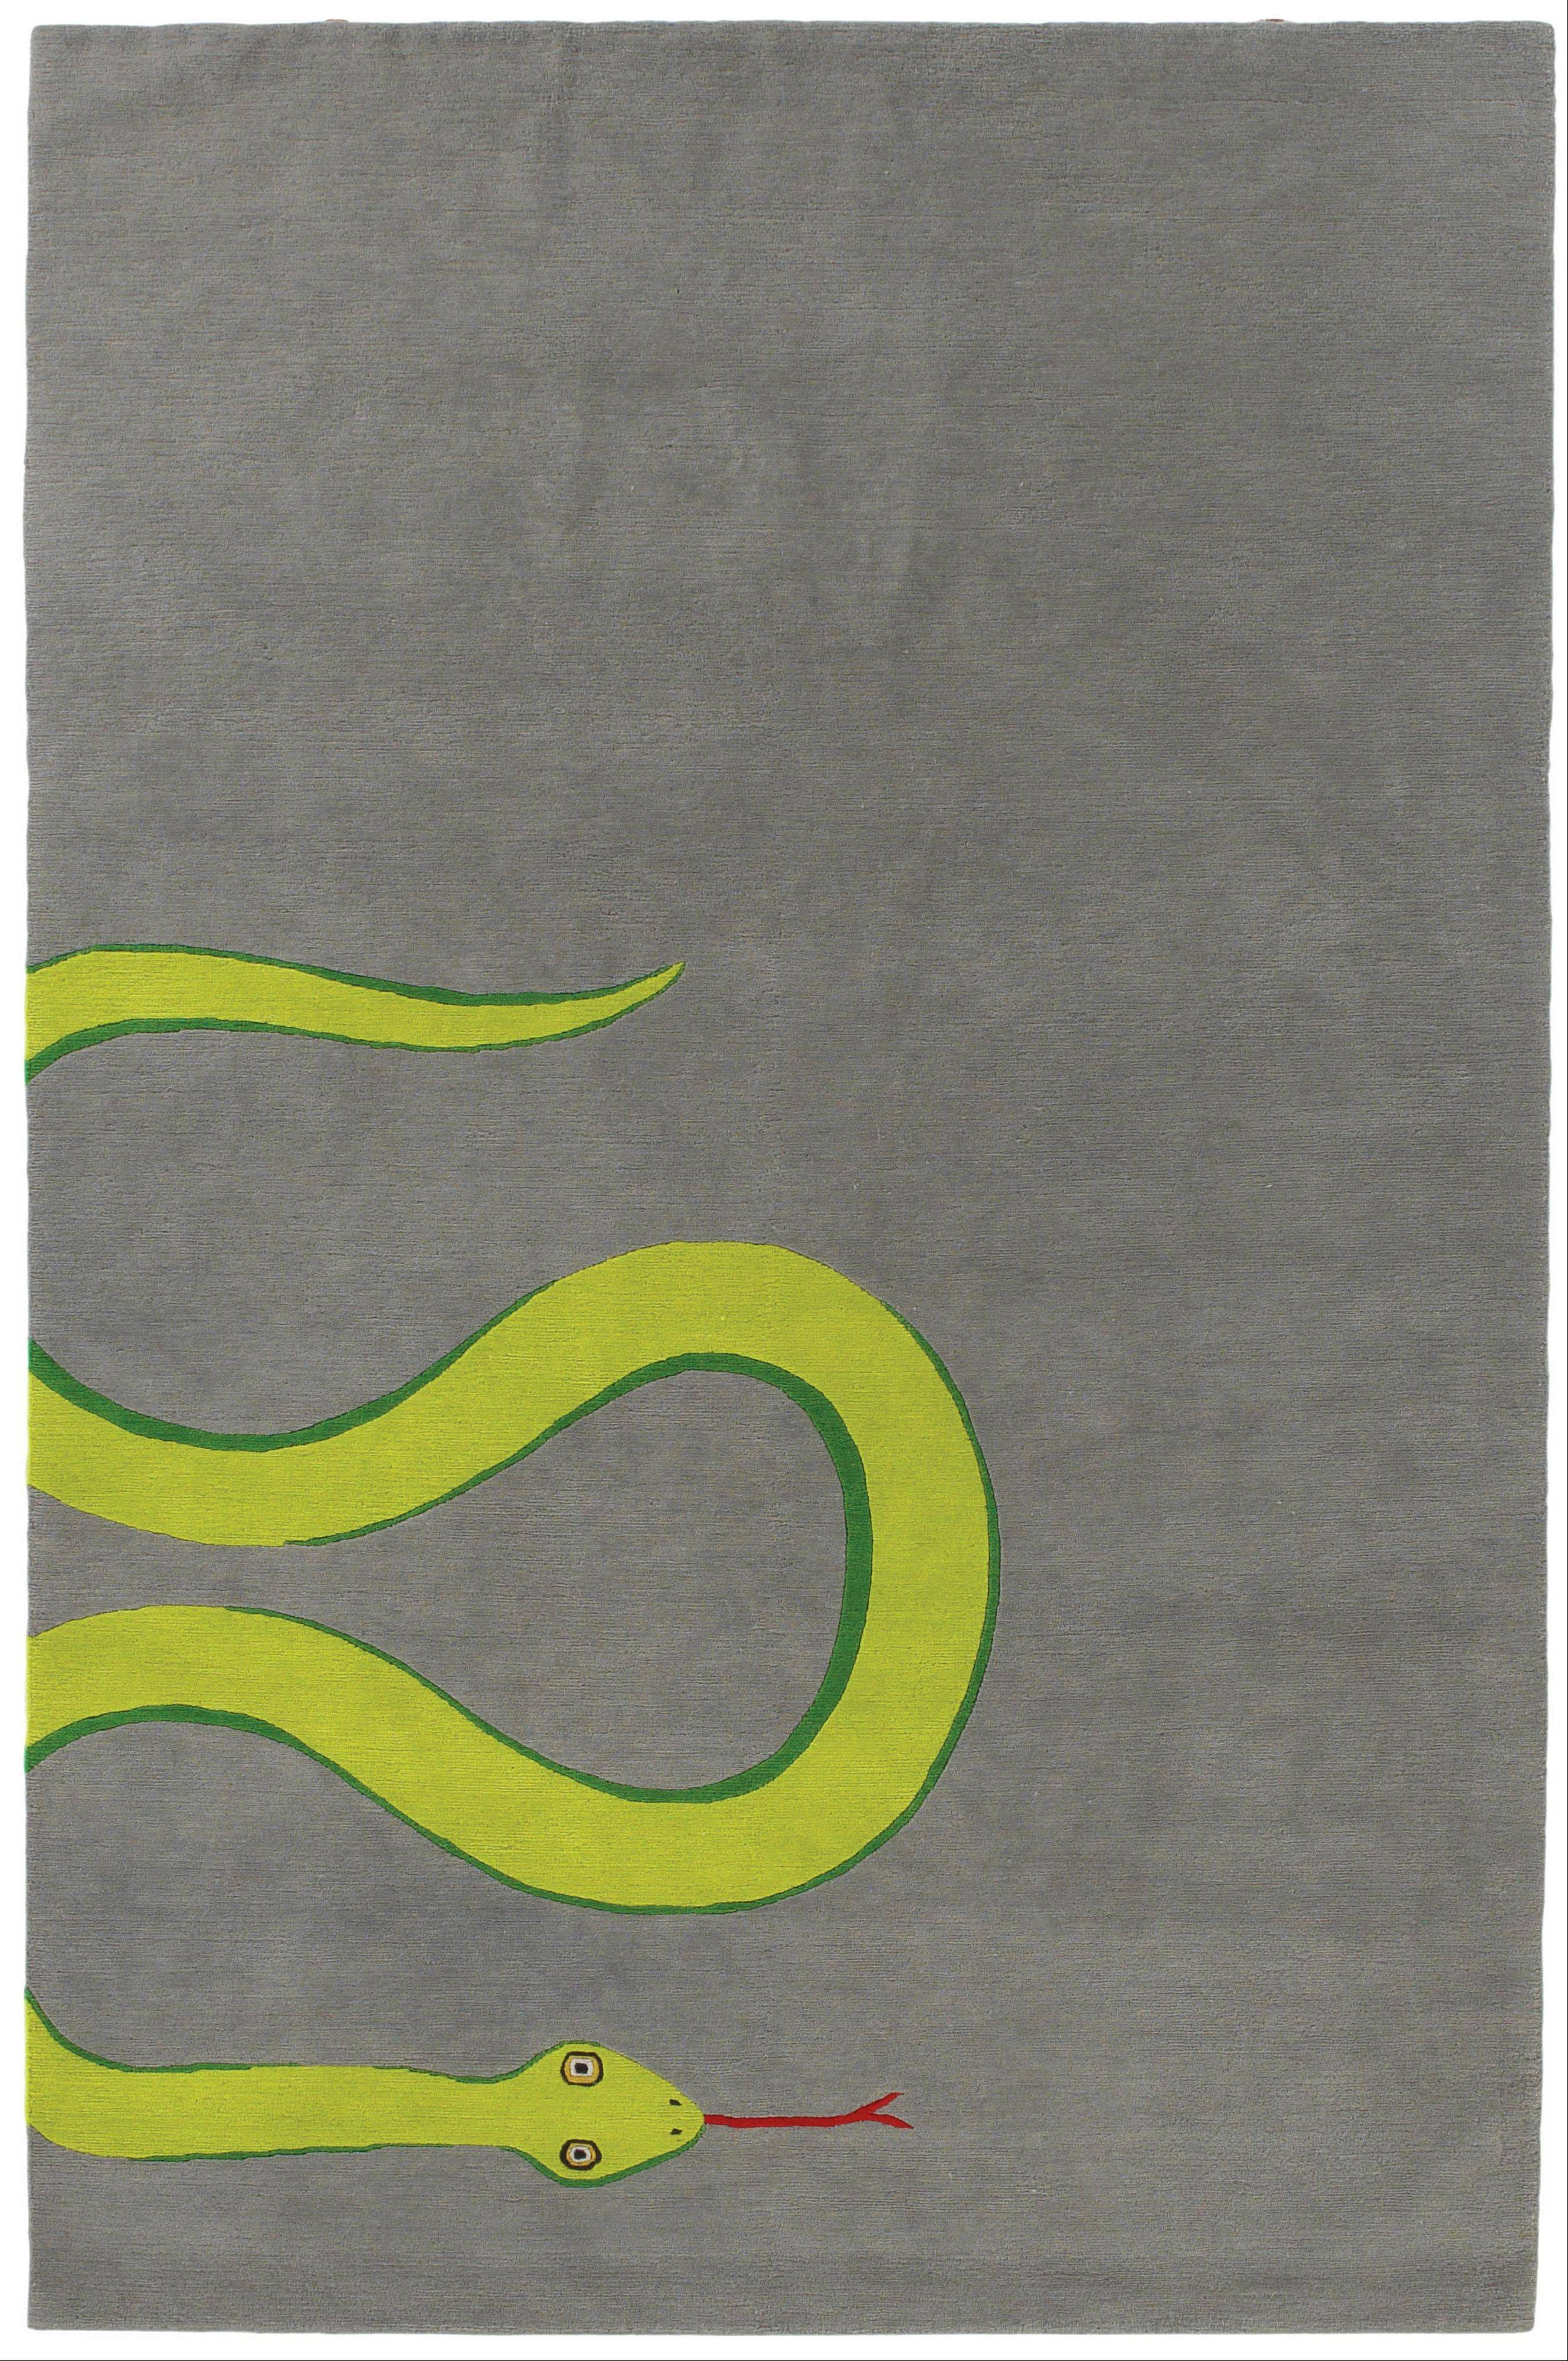 A snake rug created by designers Edward Barber and Jay Osgerby, 6-by-9 feet in size, handmade from 100 knot Tibetan wool.